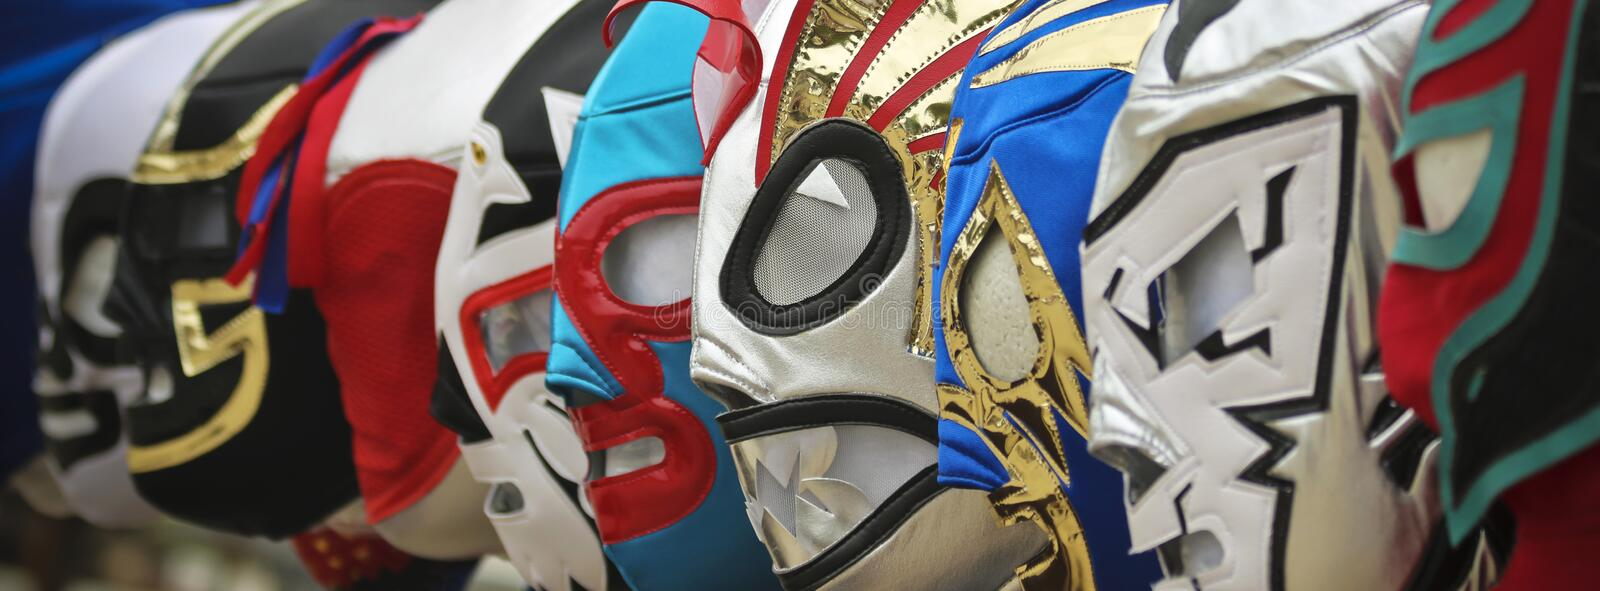 A Line of Lucha Libre Luchador Masks. A Colorful Assortment of Lucha Libre Luchador Masks royalty free stock photos